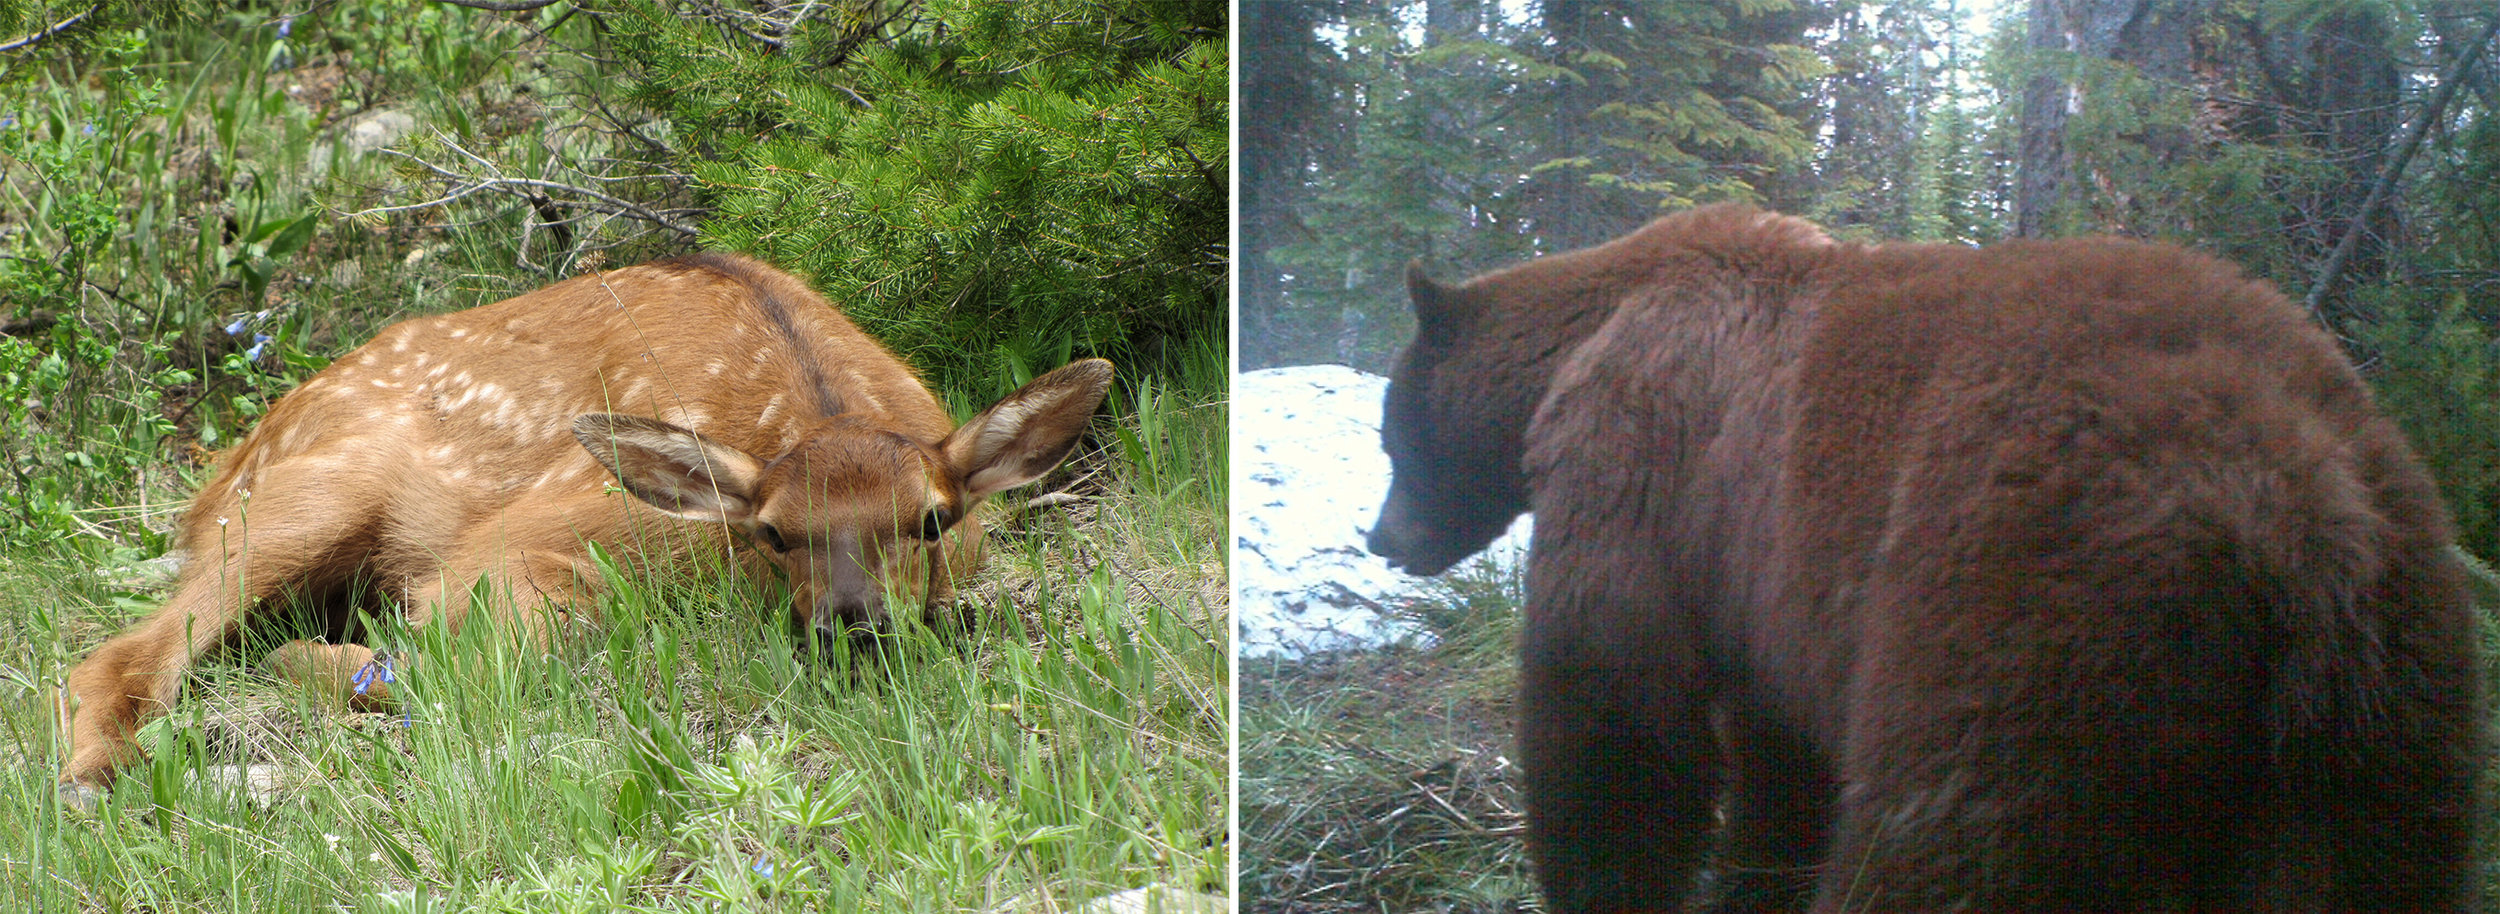 LEFT:  Mortality among elk calves, regardless of cause, occurs during the first few weeks of life. This is the time when the elk calves are most vulnerable to predation by bears.  RIGHT:  While bear hunting in most areas of Western Montana you must be able to distinguish color-phase black bears from the grizzly bears who occupy the same habitat areas.